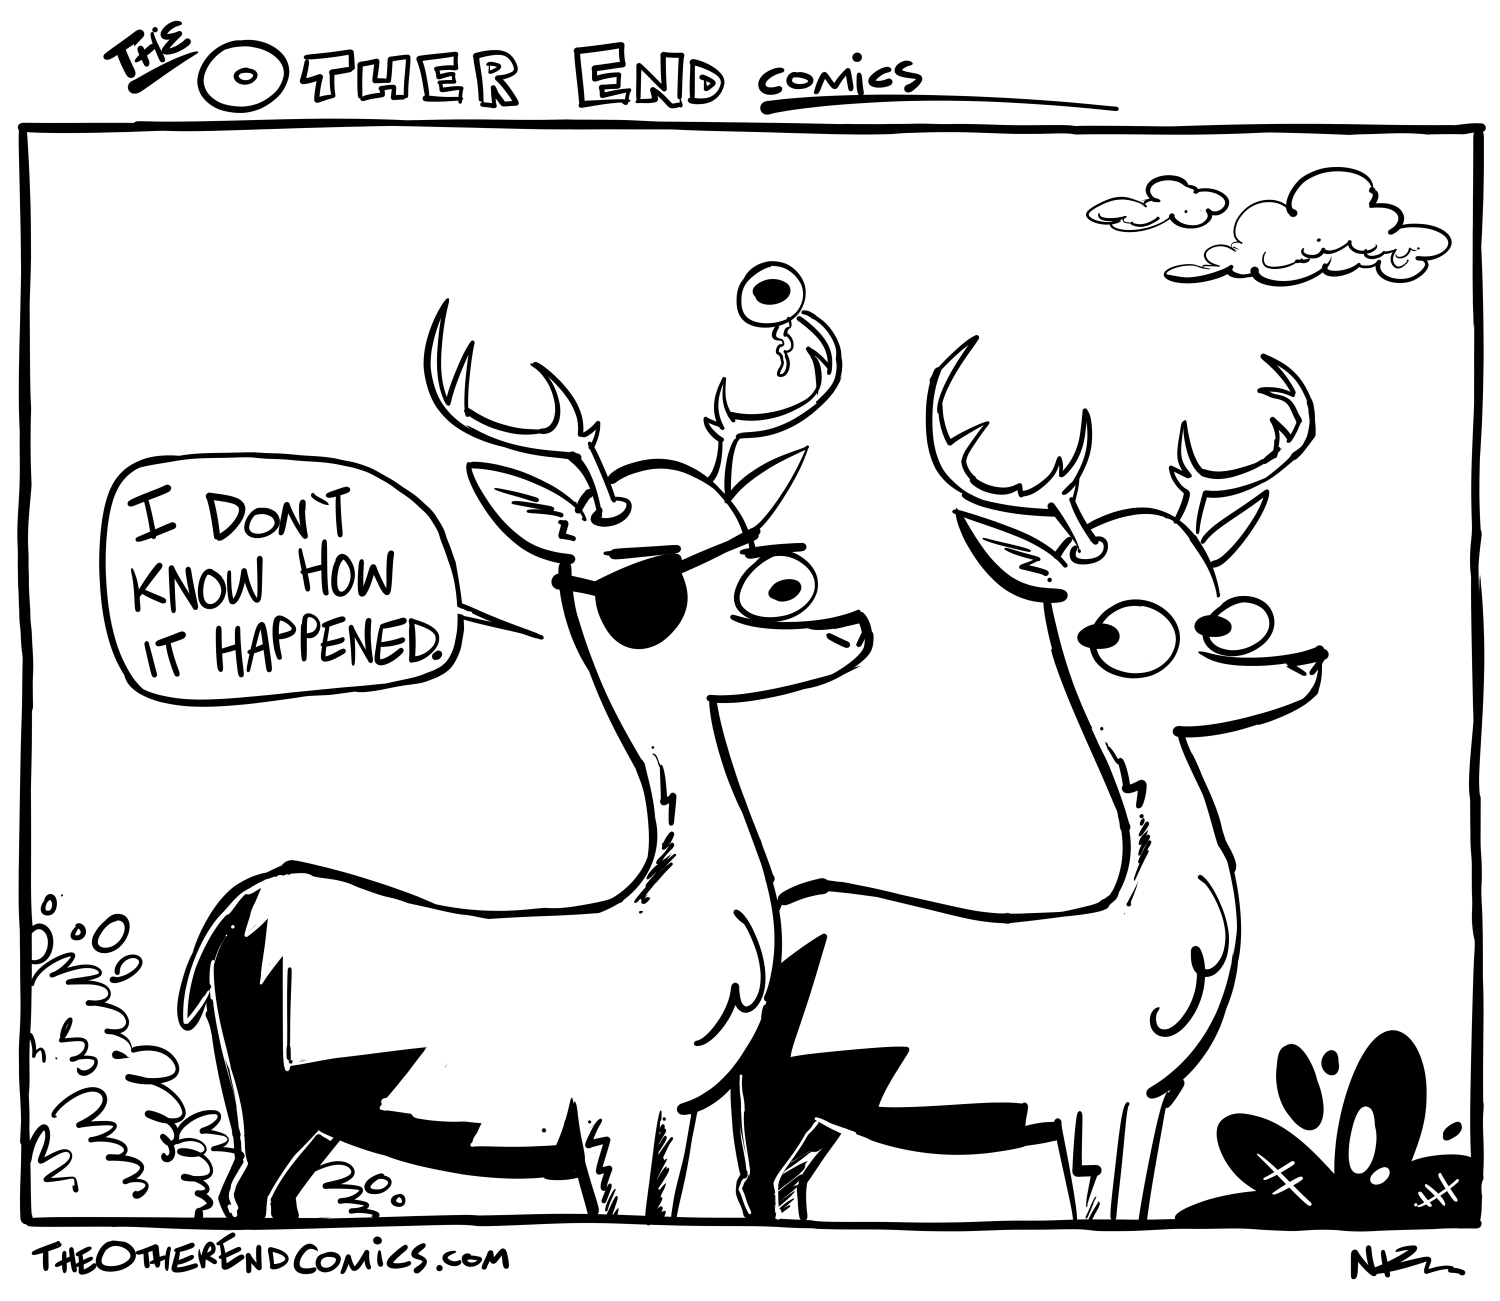 That deer's a pirate now. That's the law